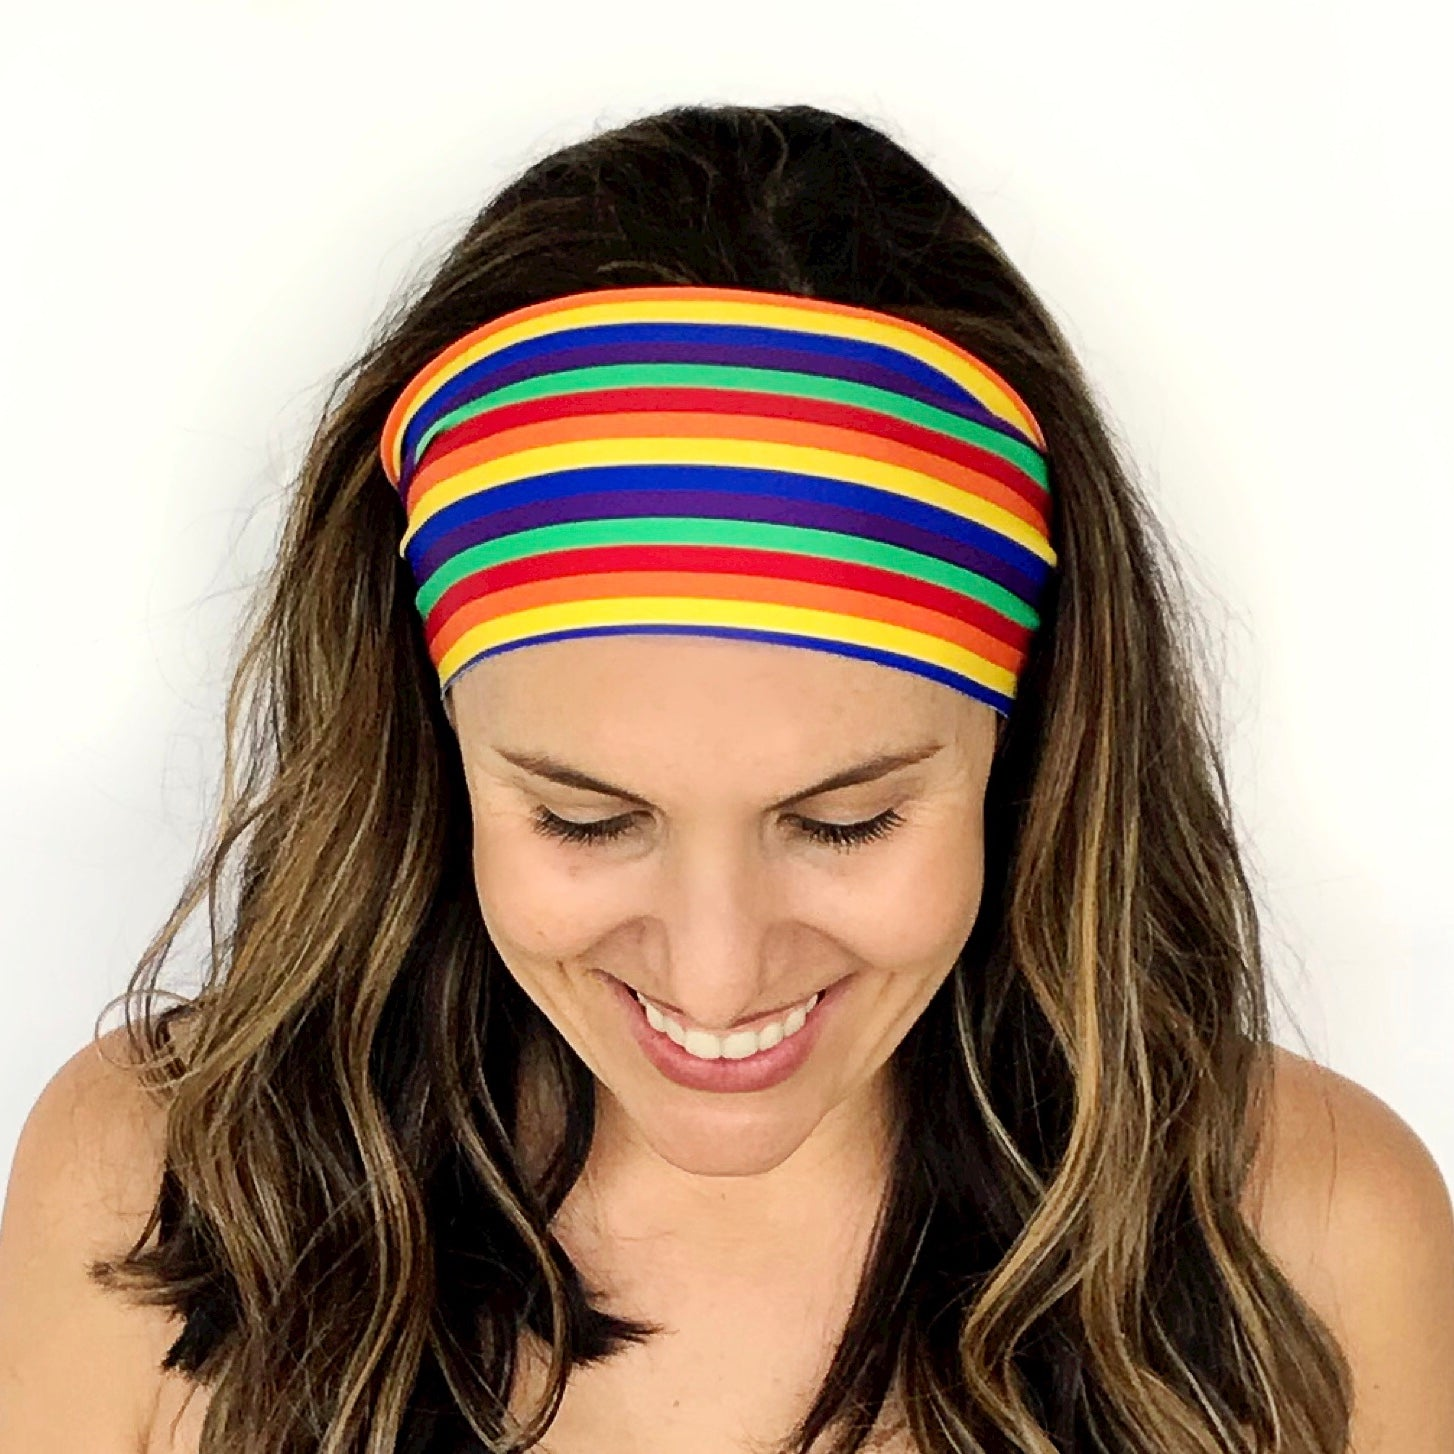 Rainbow Workout Headband